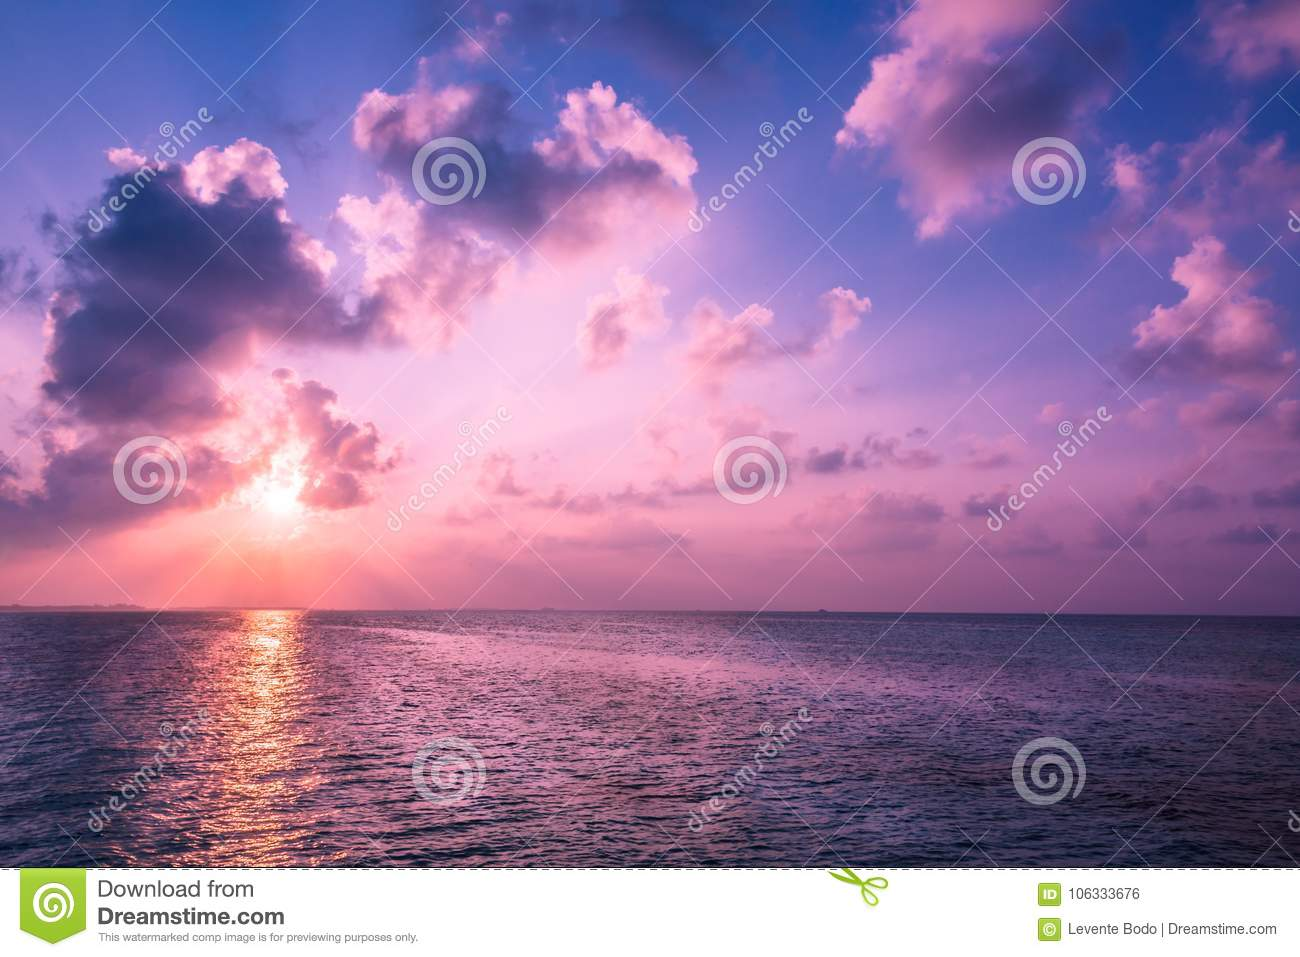 Download Beautiful Tropical Beach Sunset Landscape And Soft Waves Background Horizon With Sky White